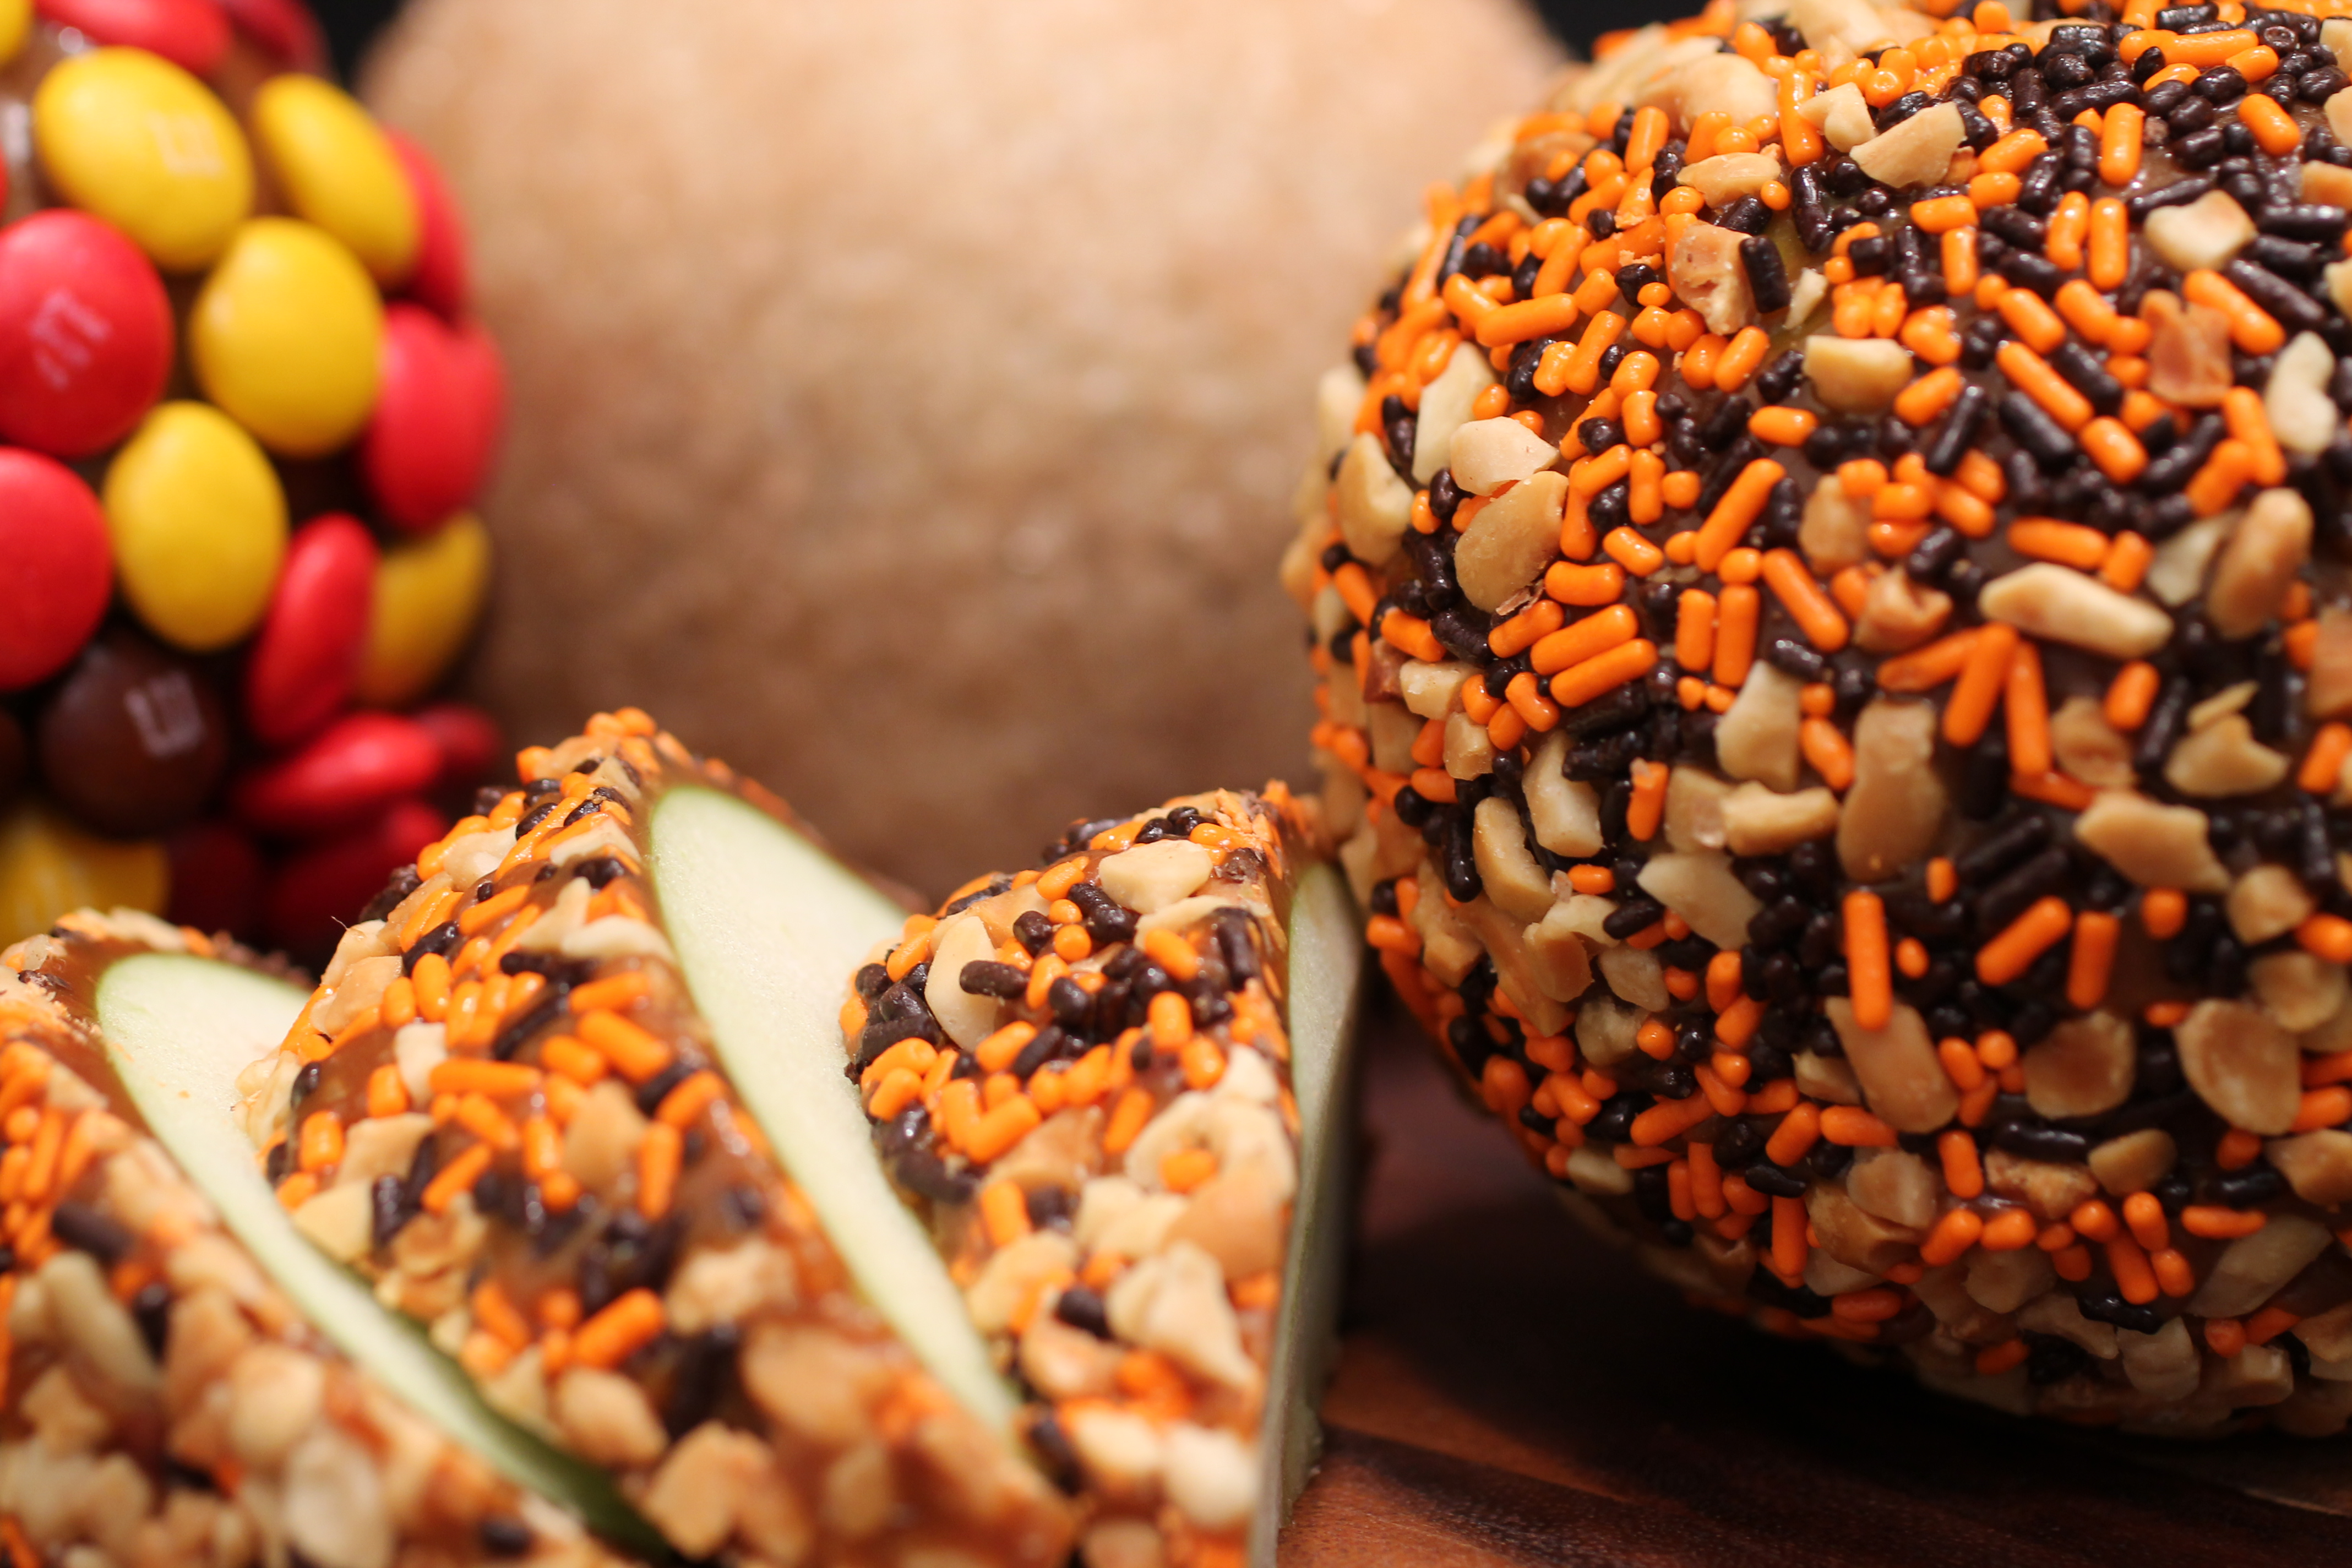 Taffy apples with candy and nut toppings